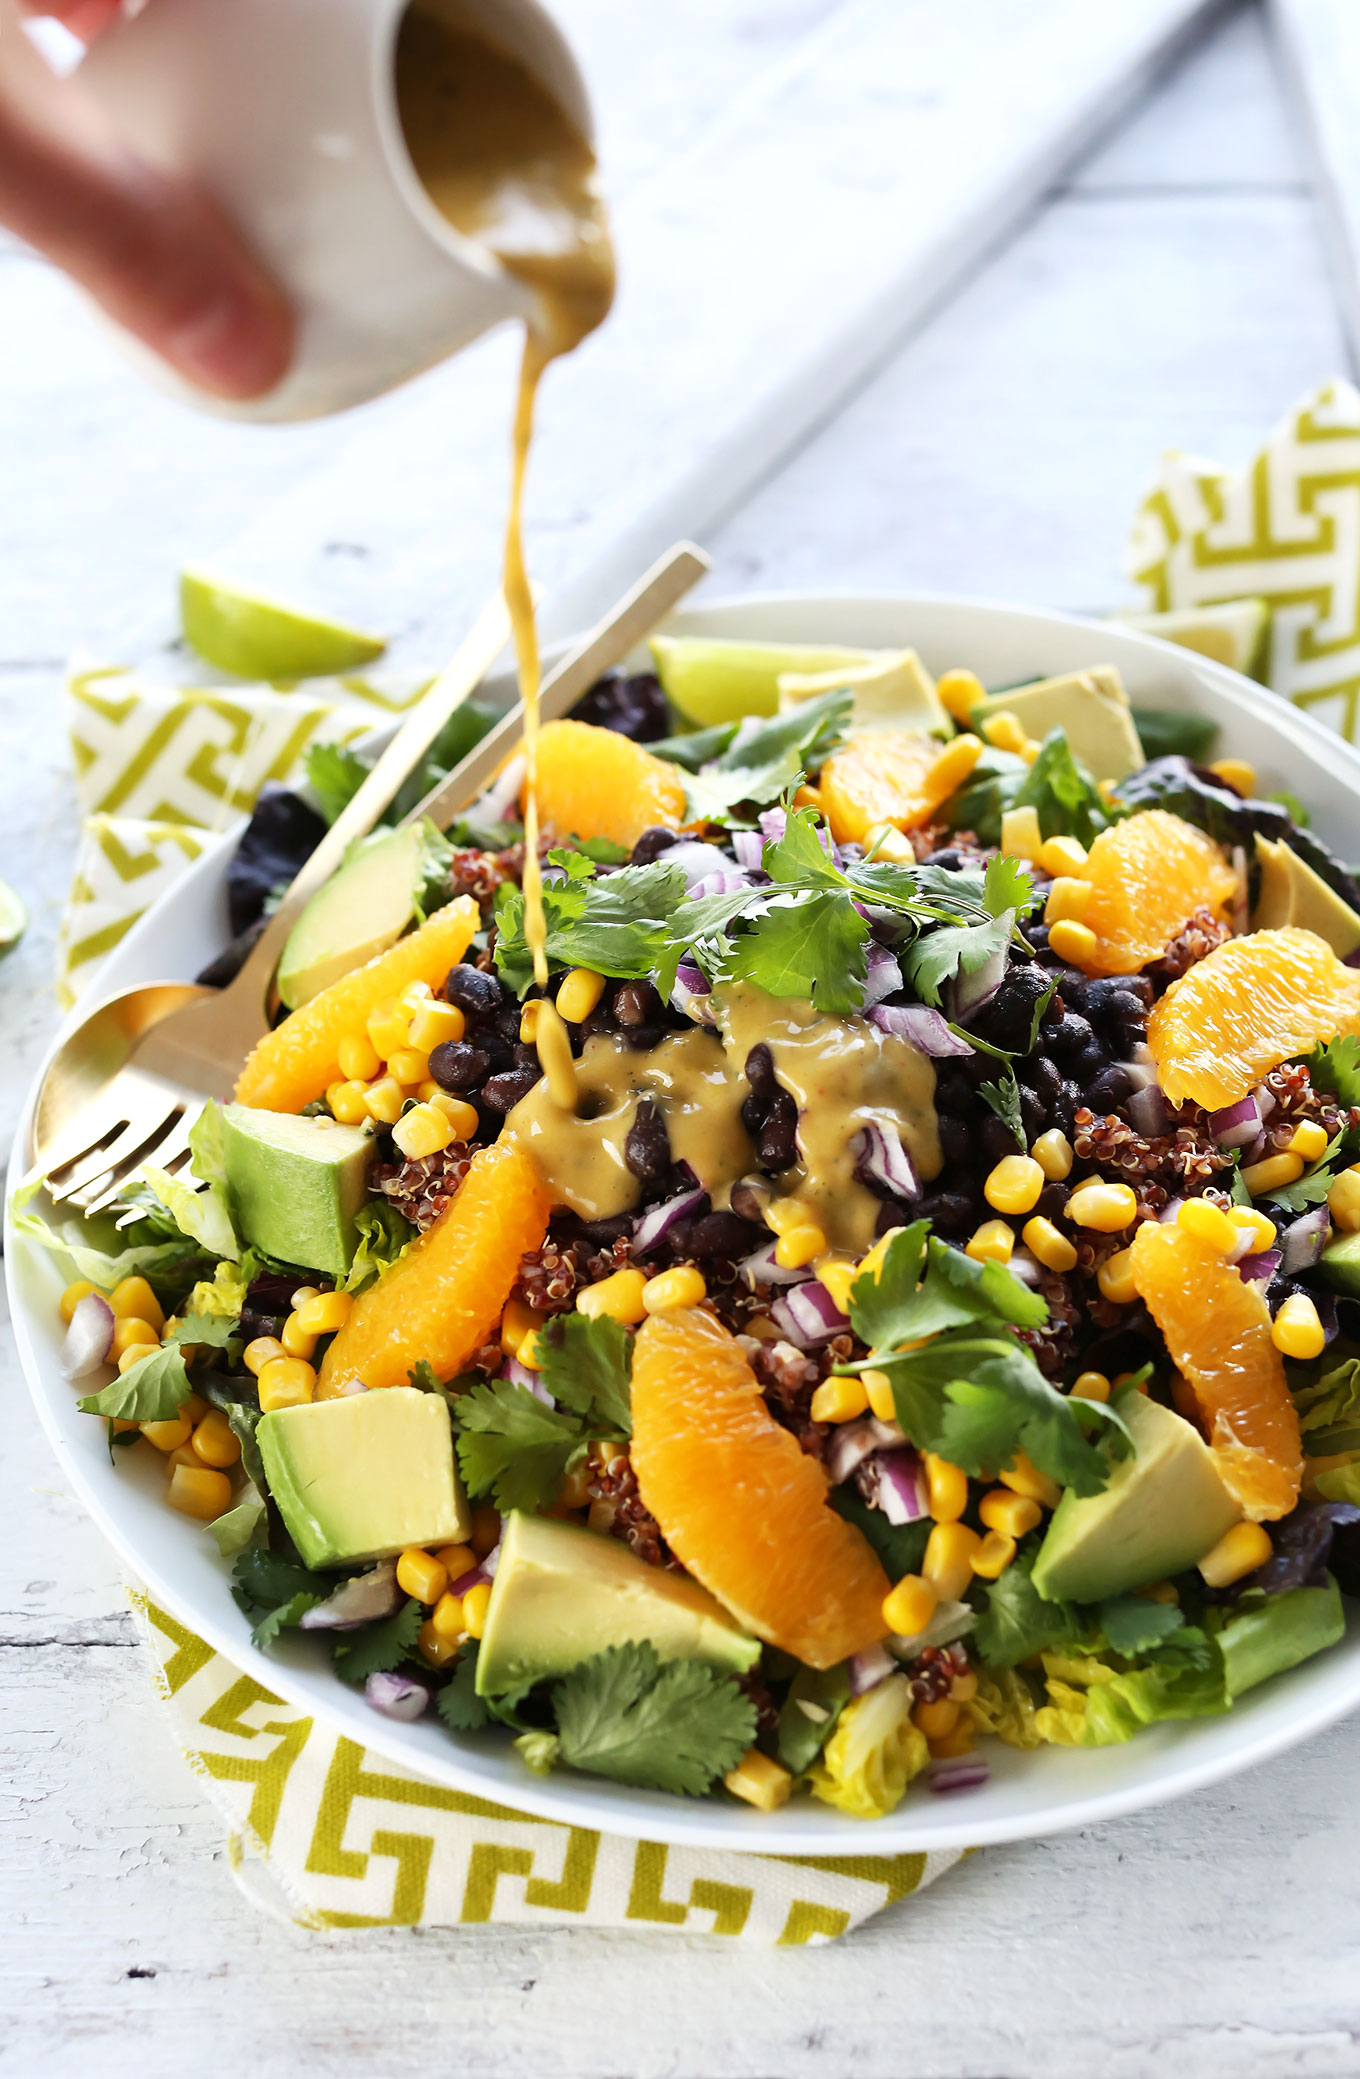 Drizzling Creamy Orange Chili Dressing onto Vegan Mexican Quinoa Salad